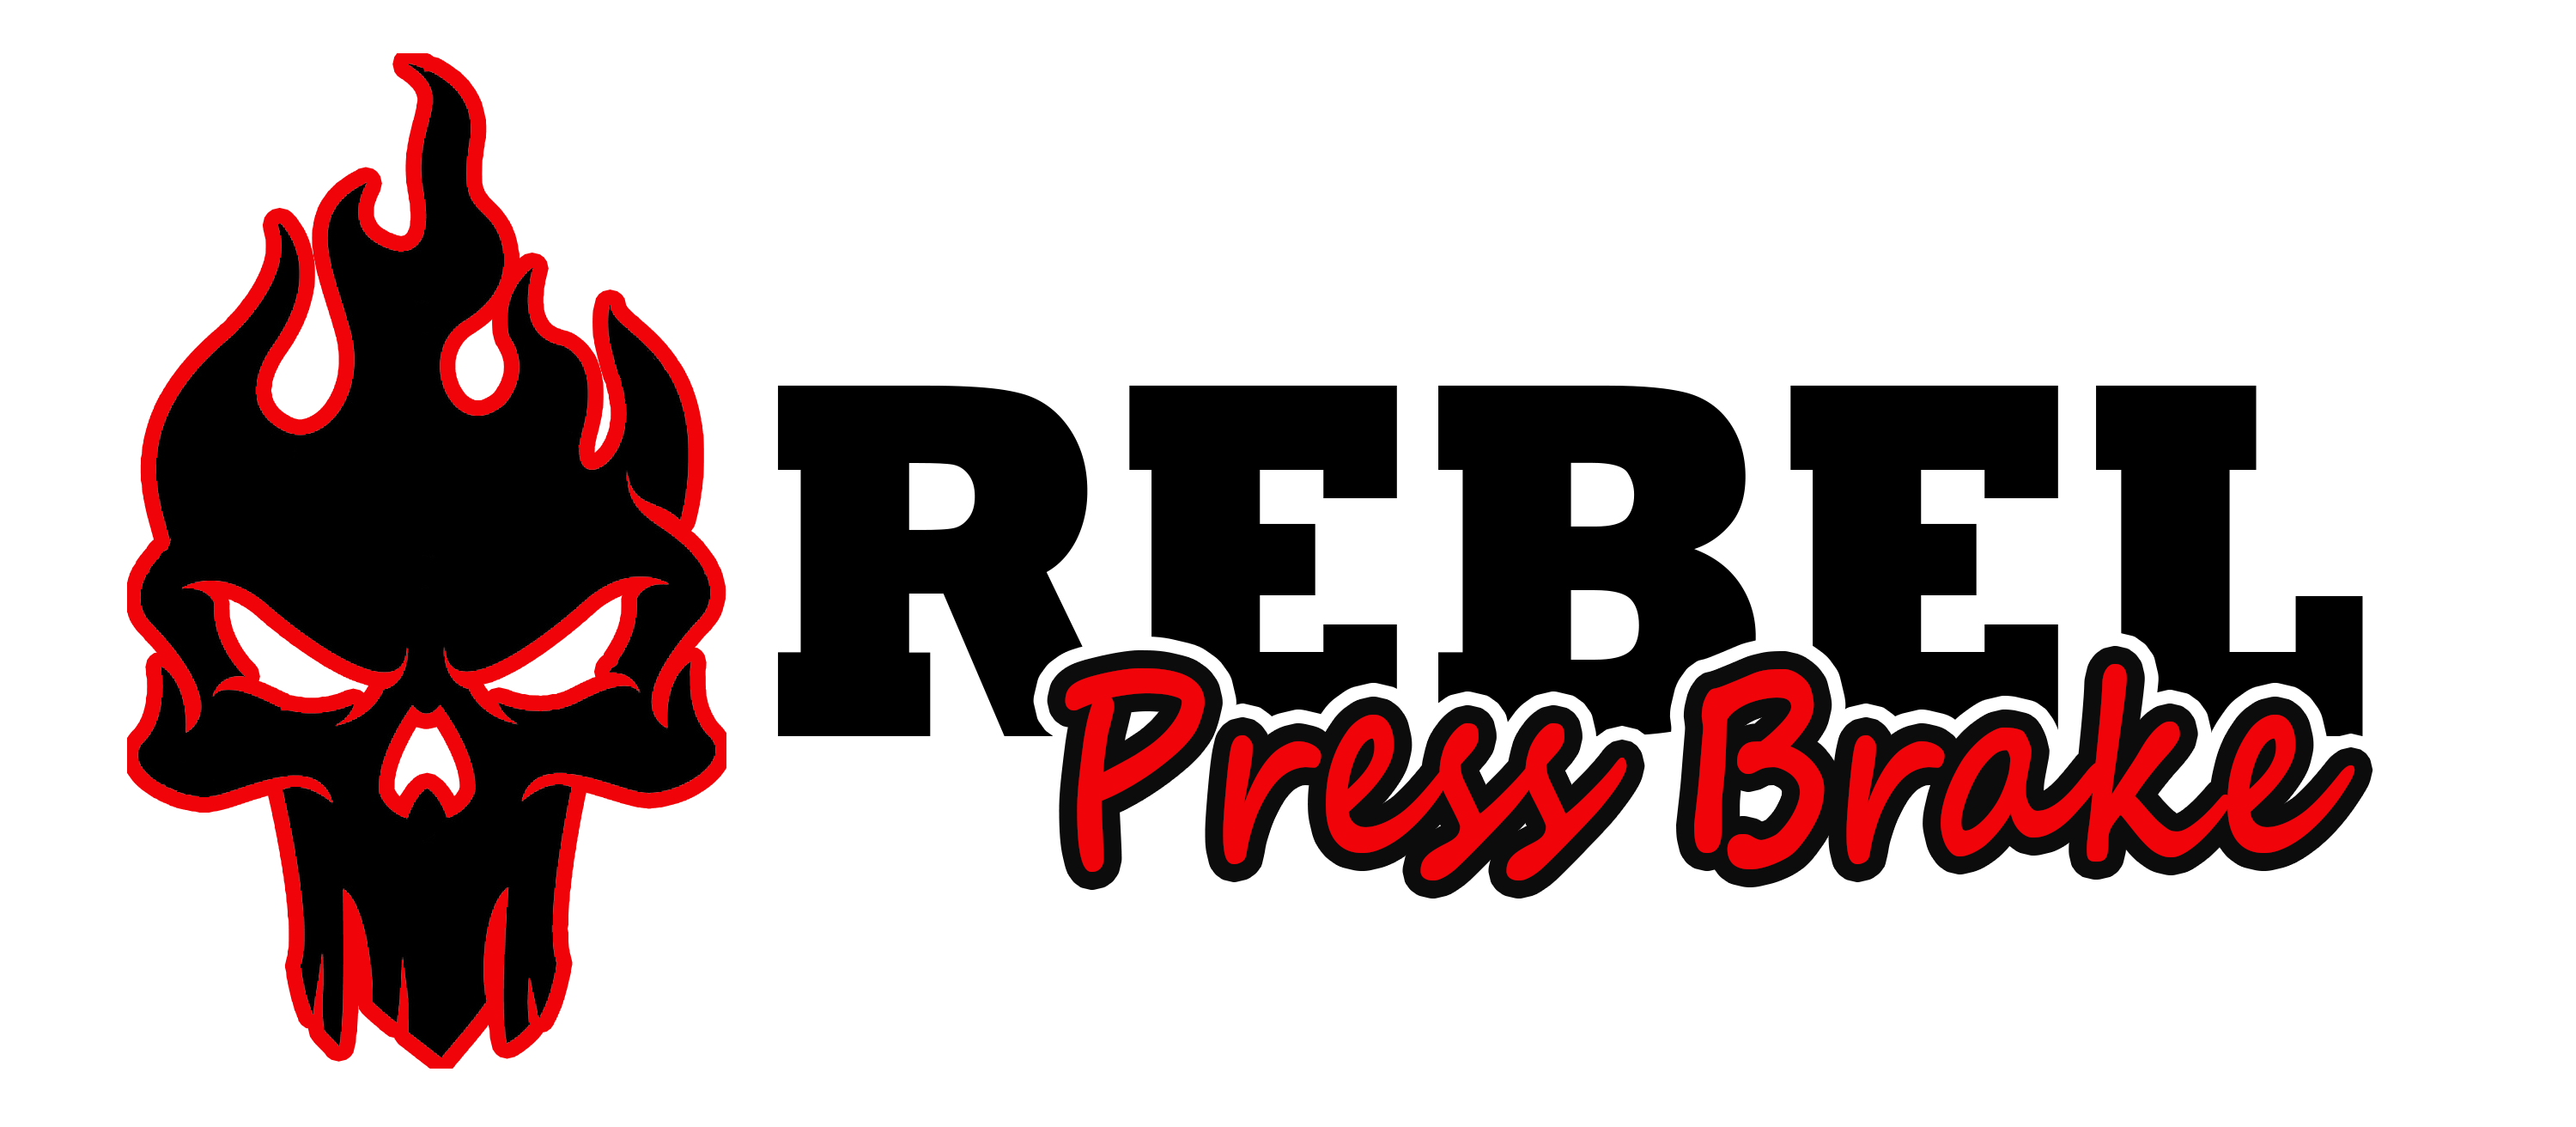 Rebel Press Brake